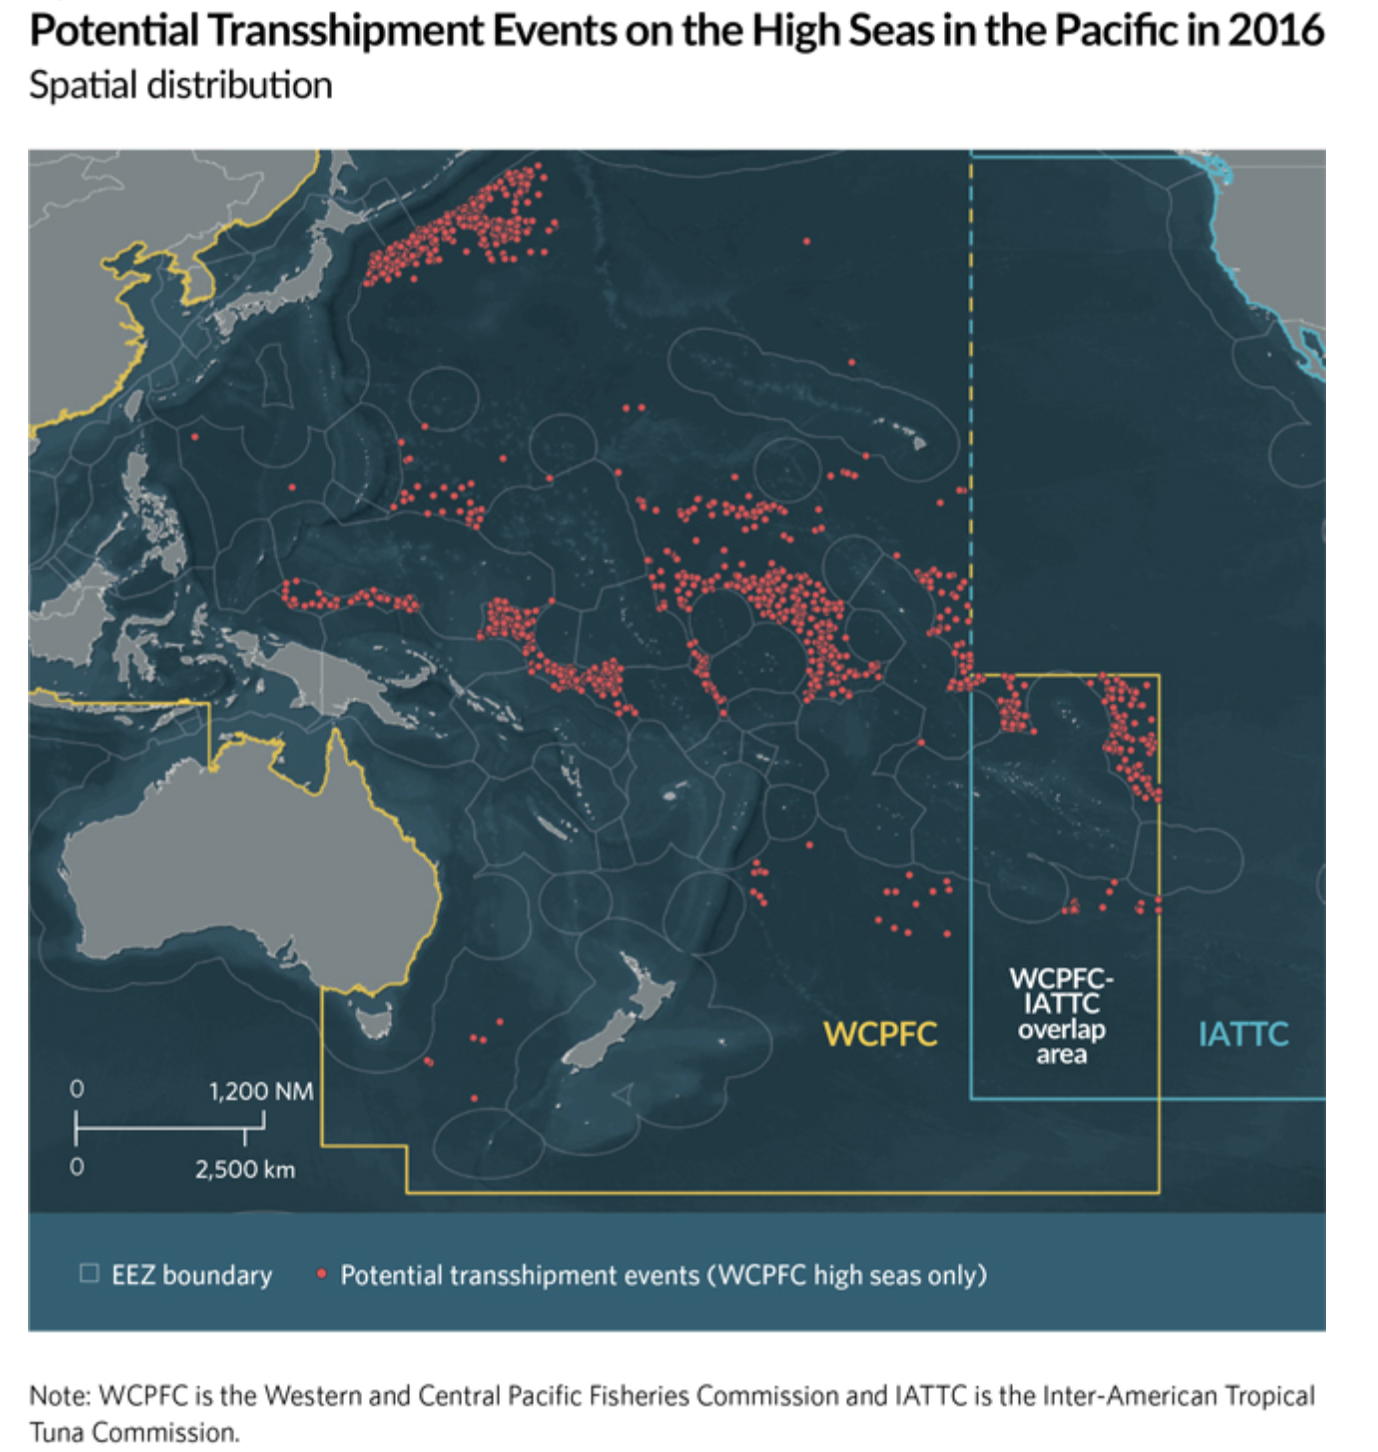 Pew Report Finds Transshipments in Western and Central Pacific Likely Underreported